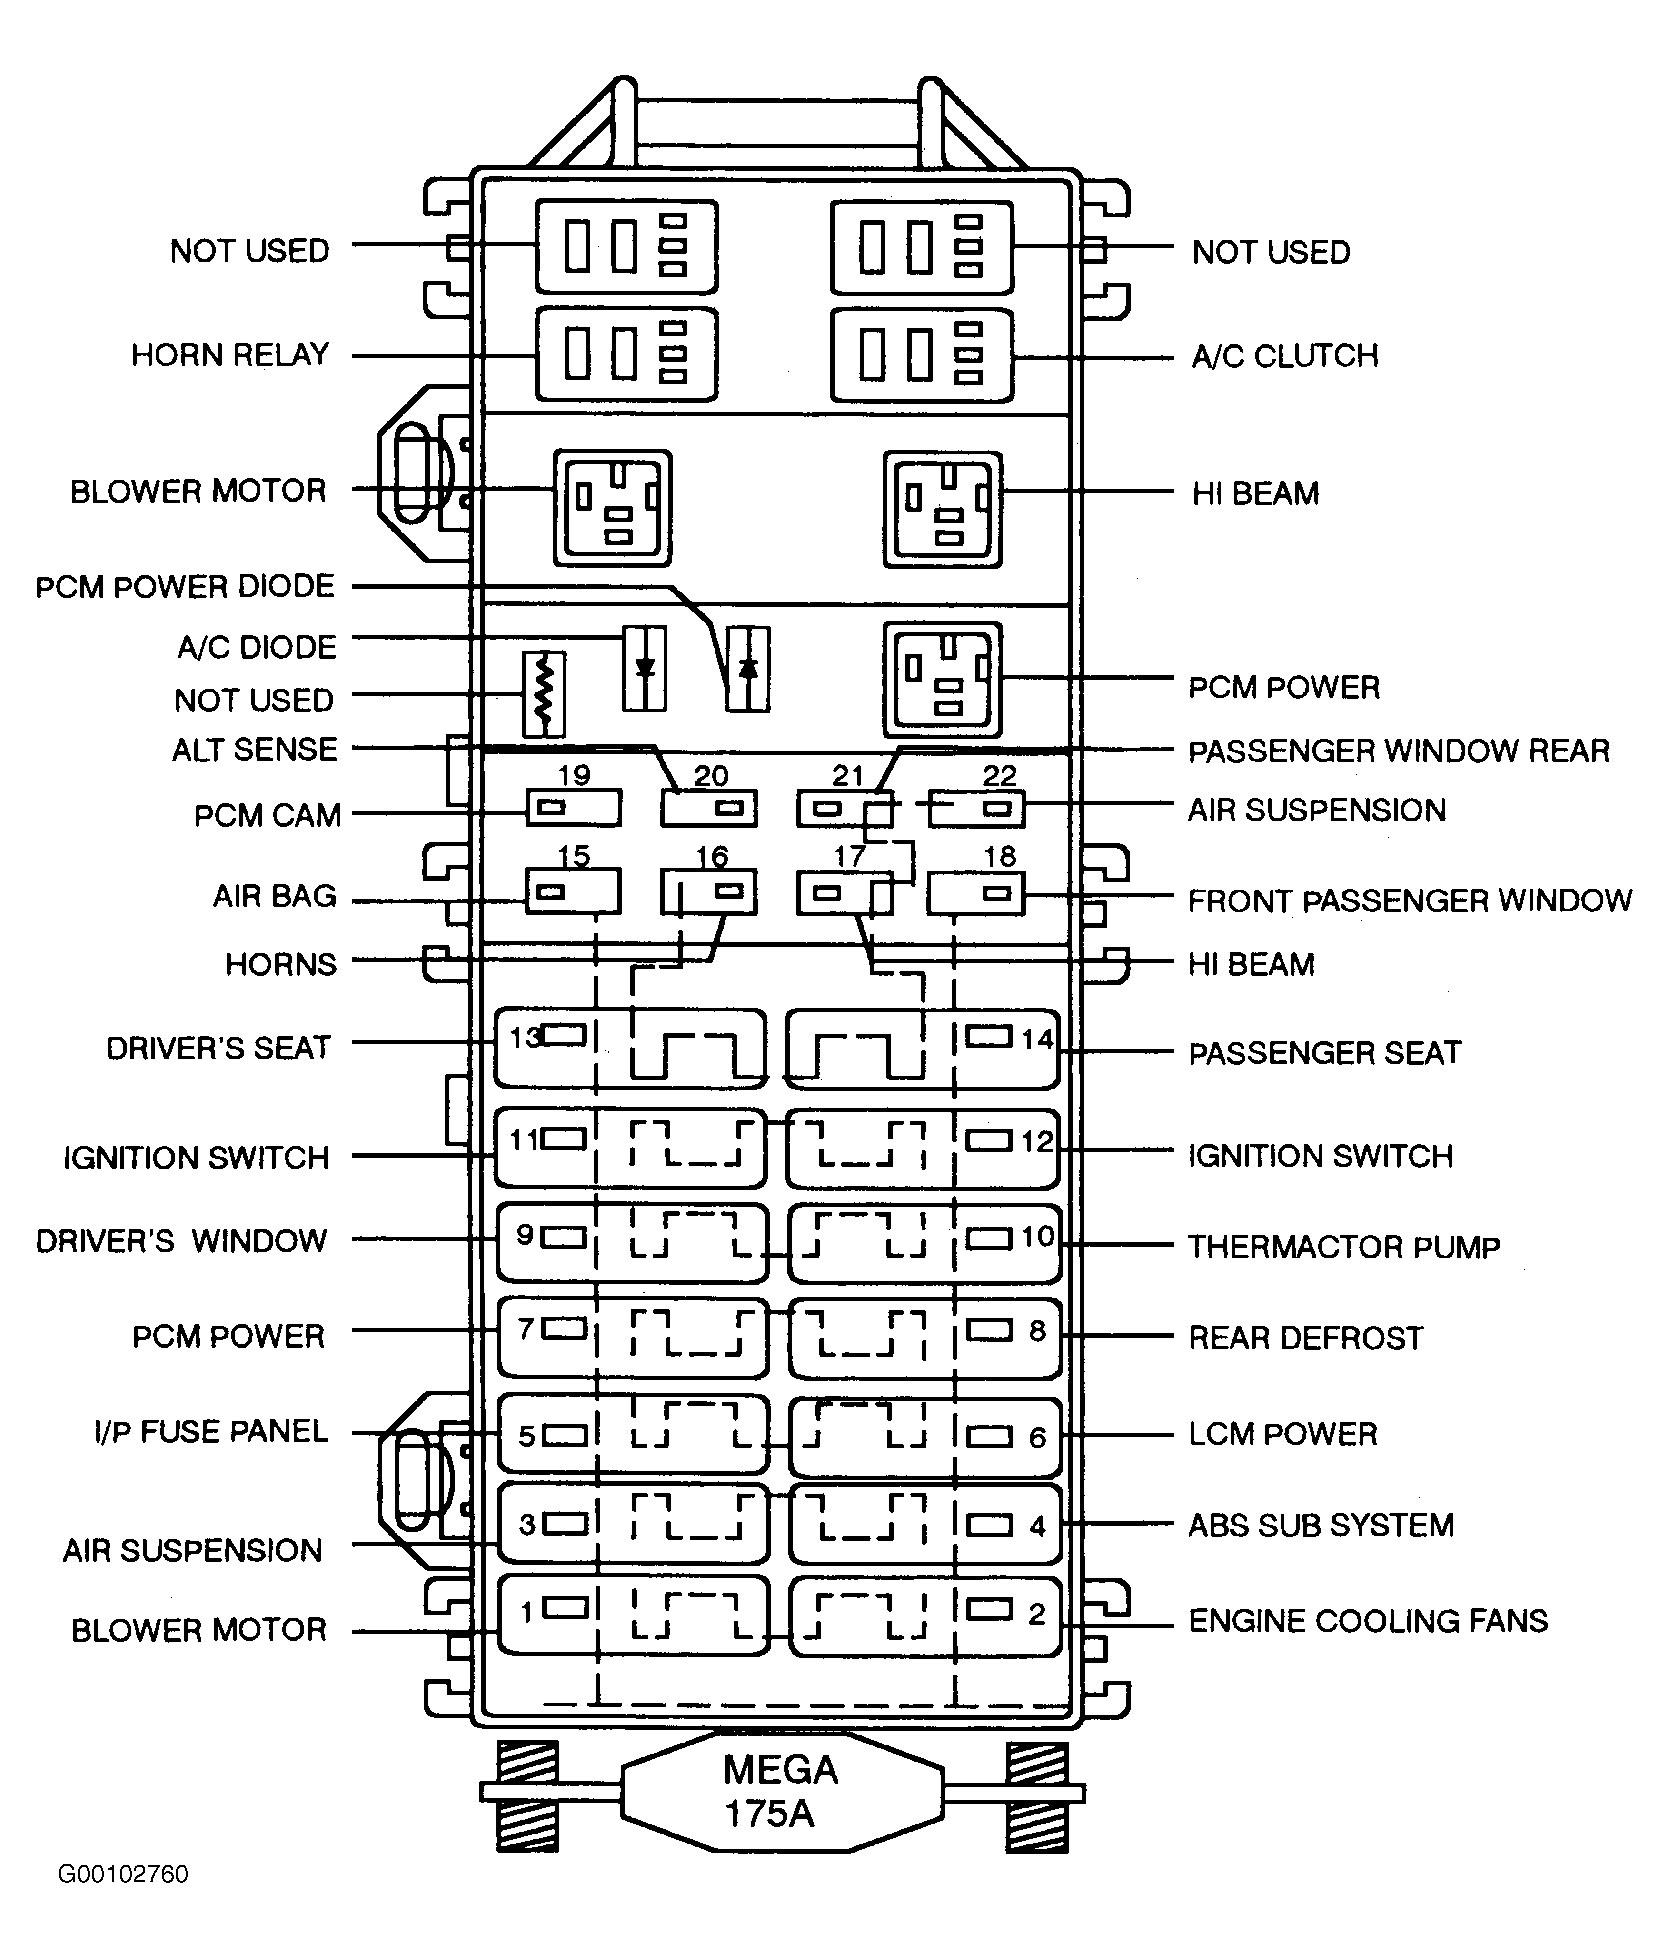 Fuse Box Lincoln Town Car 2000 Electrical Wiring Diagrams 2003 Ls Diagram For You All U2022 1997